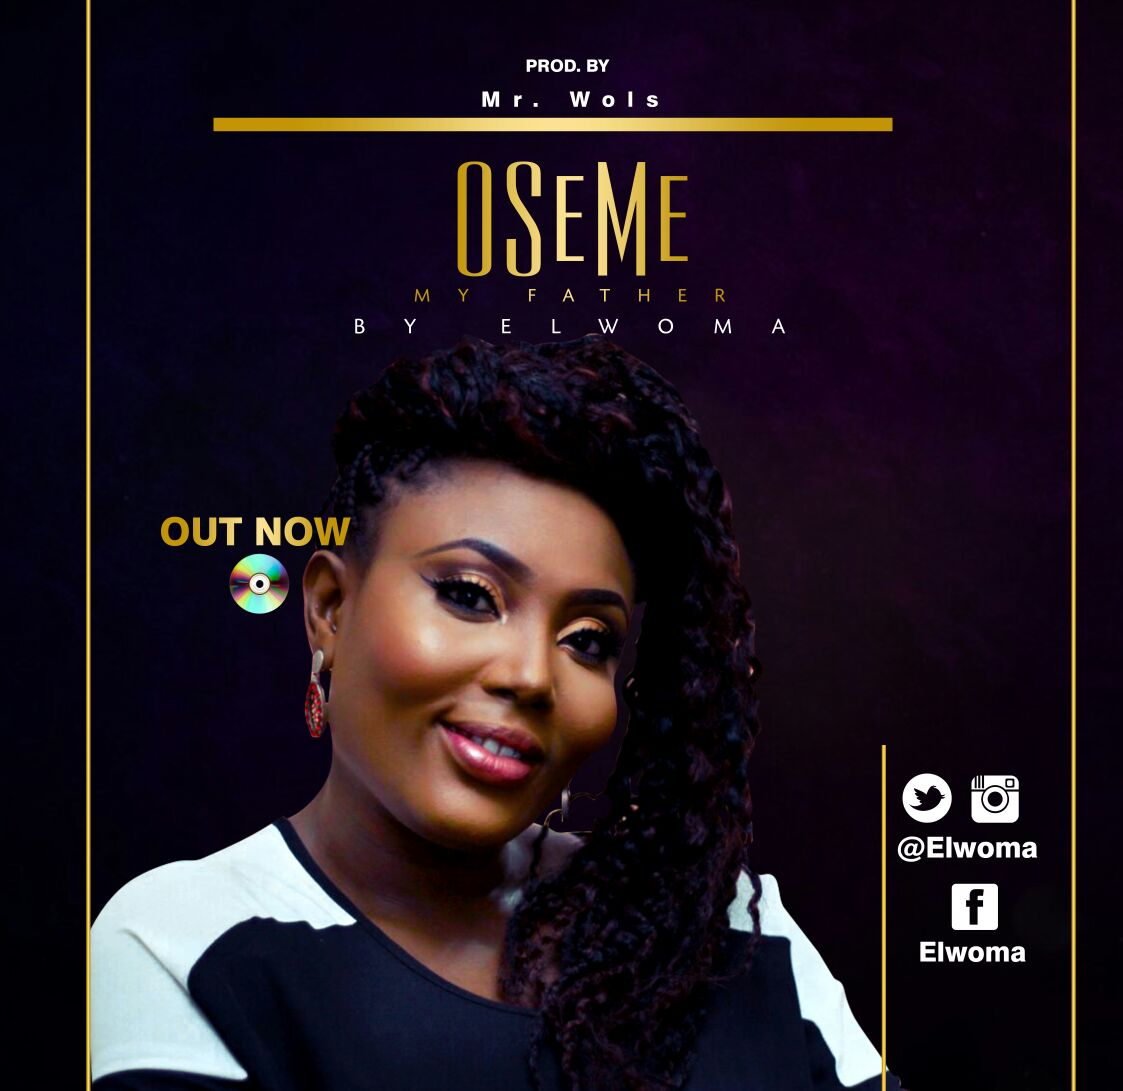 Music: O Se Me (My Father) ~ Elwoma [@Elwoma]